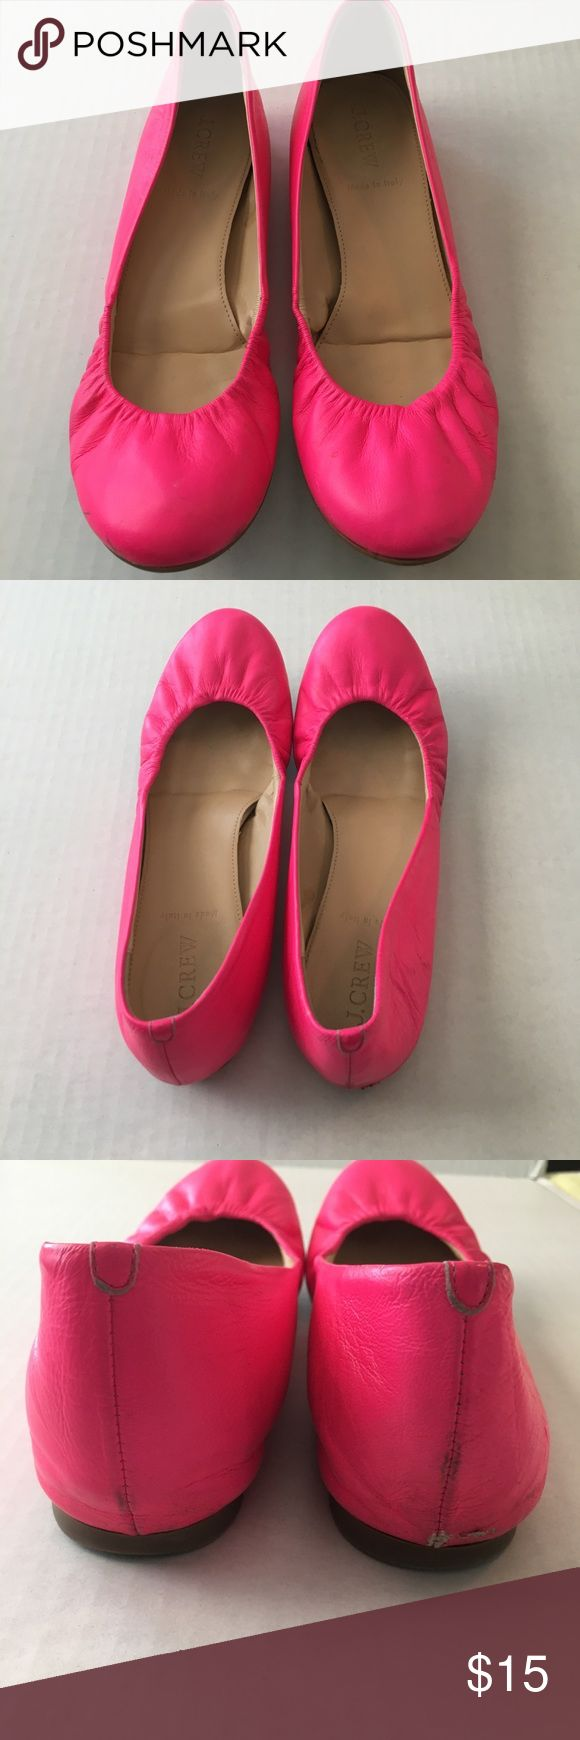 J.Crew bright pink ballet flats Bright pink color. Leather upper. Previously worn and there are some scratches in the leather shown in the pictures. J. Crew Shoes Flats & Loafers